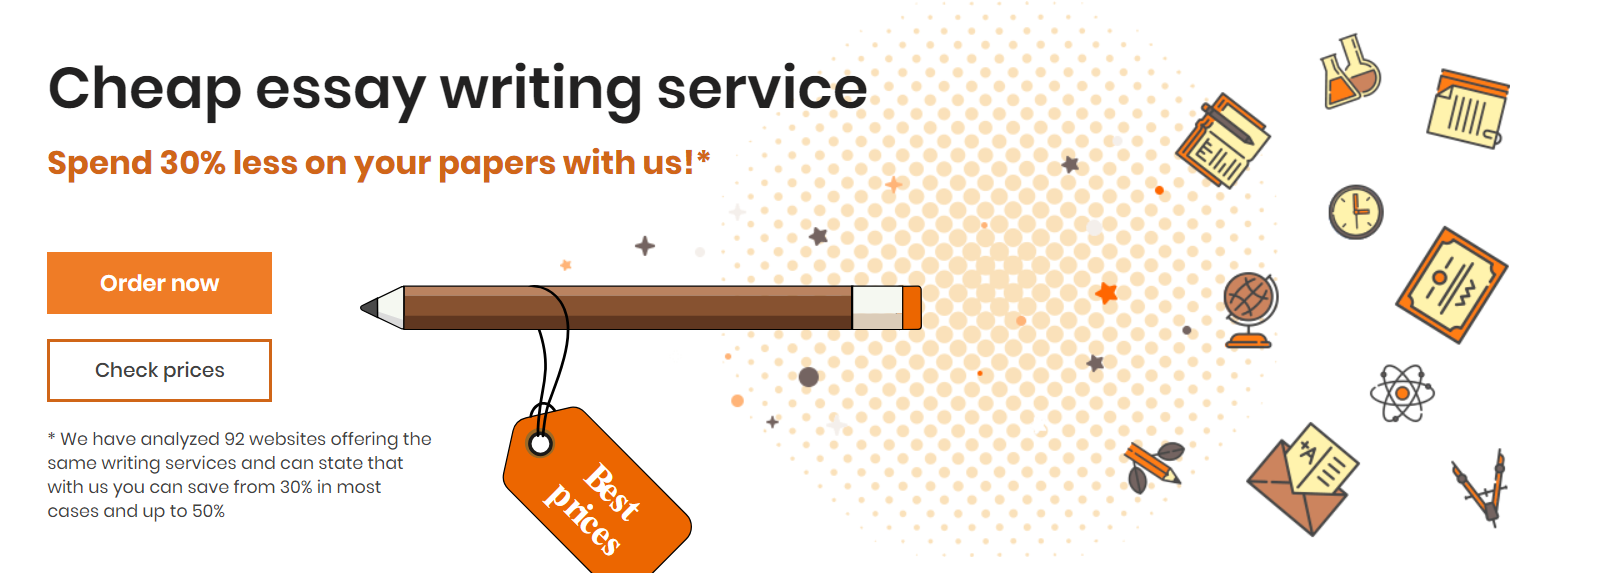 Full Review: Things To Know Before Becoming A CheapWritingService.com Client